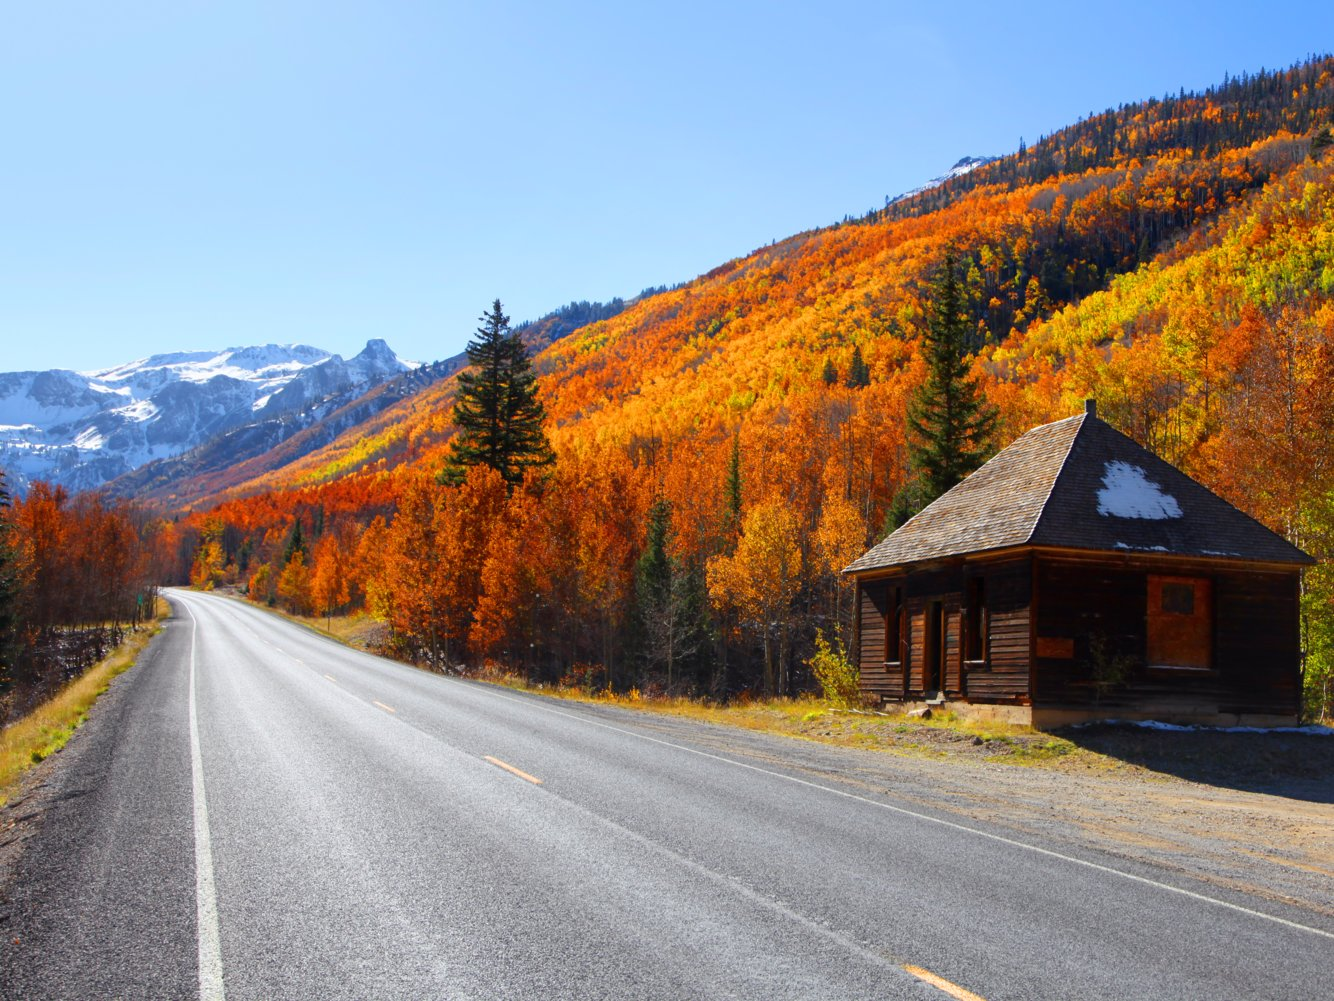 million dollar highway  | Real Estate and Lifestyle in Northern Colorado, a blog by Joanna Gyrath, Realtor | Search homes in Fort Collins, Loveland, Greeley, Windsor, Longmont, Laporte, Wellington, Timnath, Severance, Eaton, Evans, Livermore, Red Feather Lakes